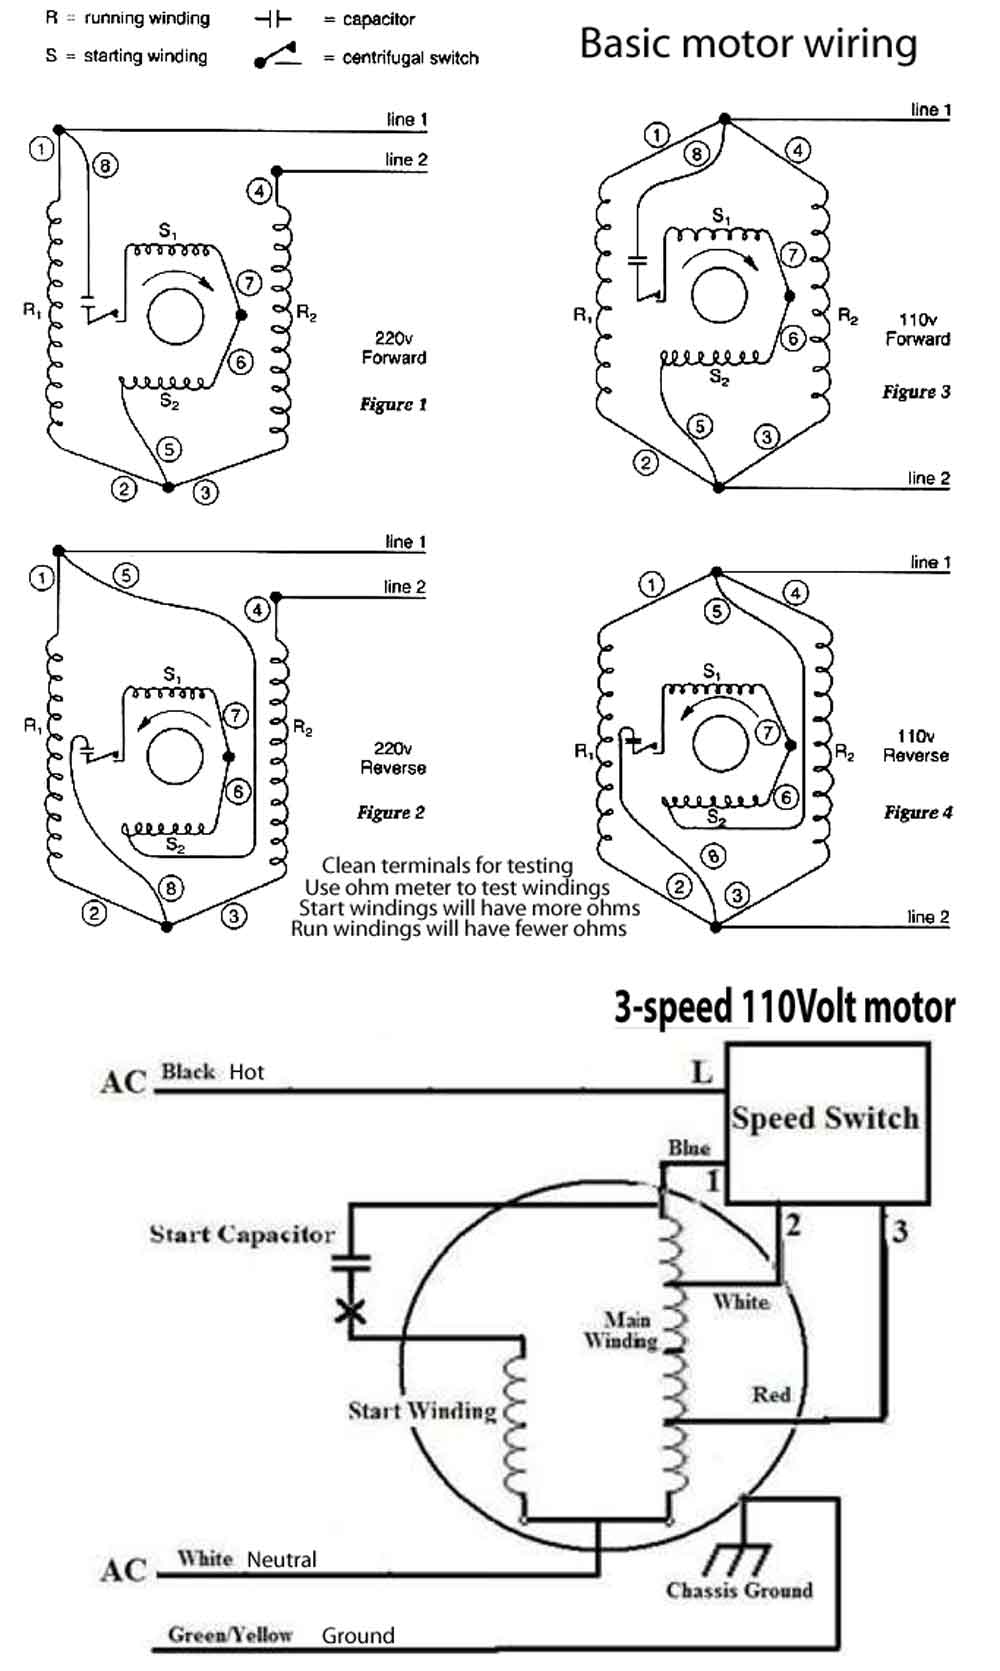 Motor wiring 500 how to wire 3 speed fan switch westinghouse ceiling fan wiring diagram at couponss.co